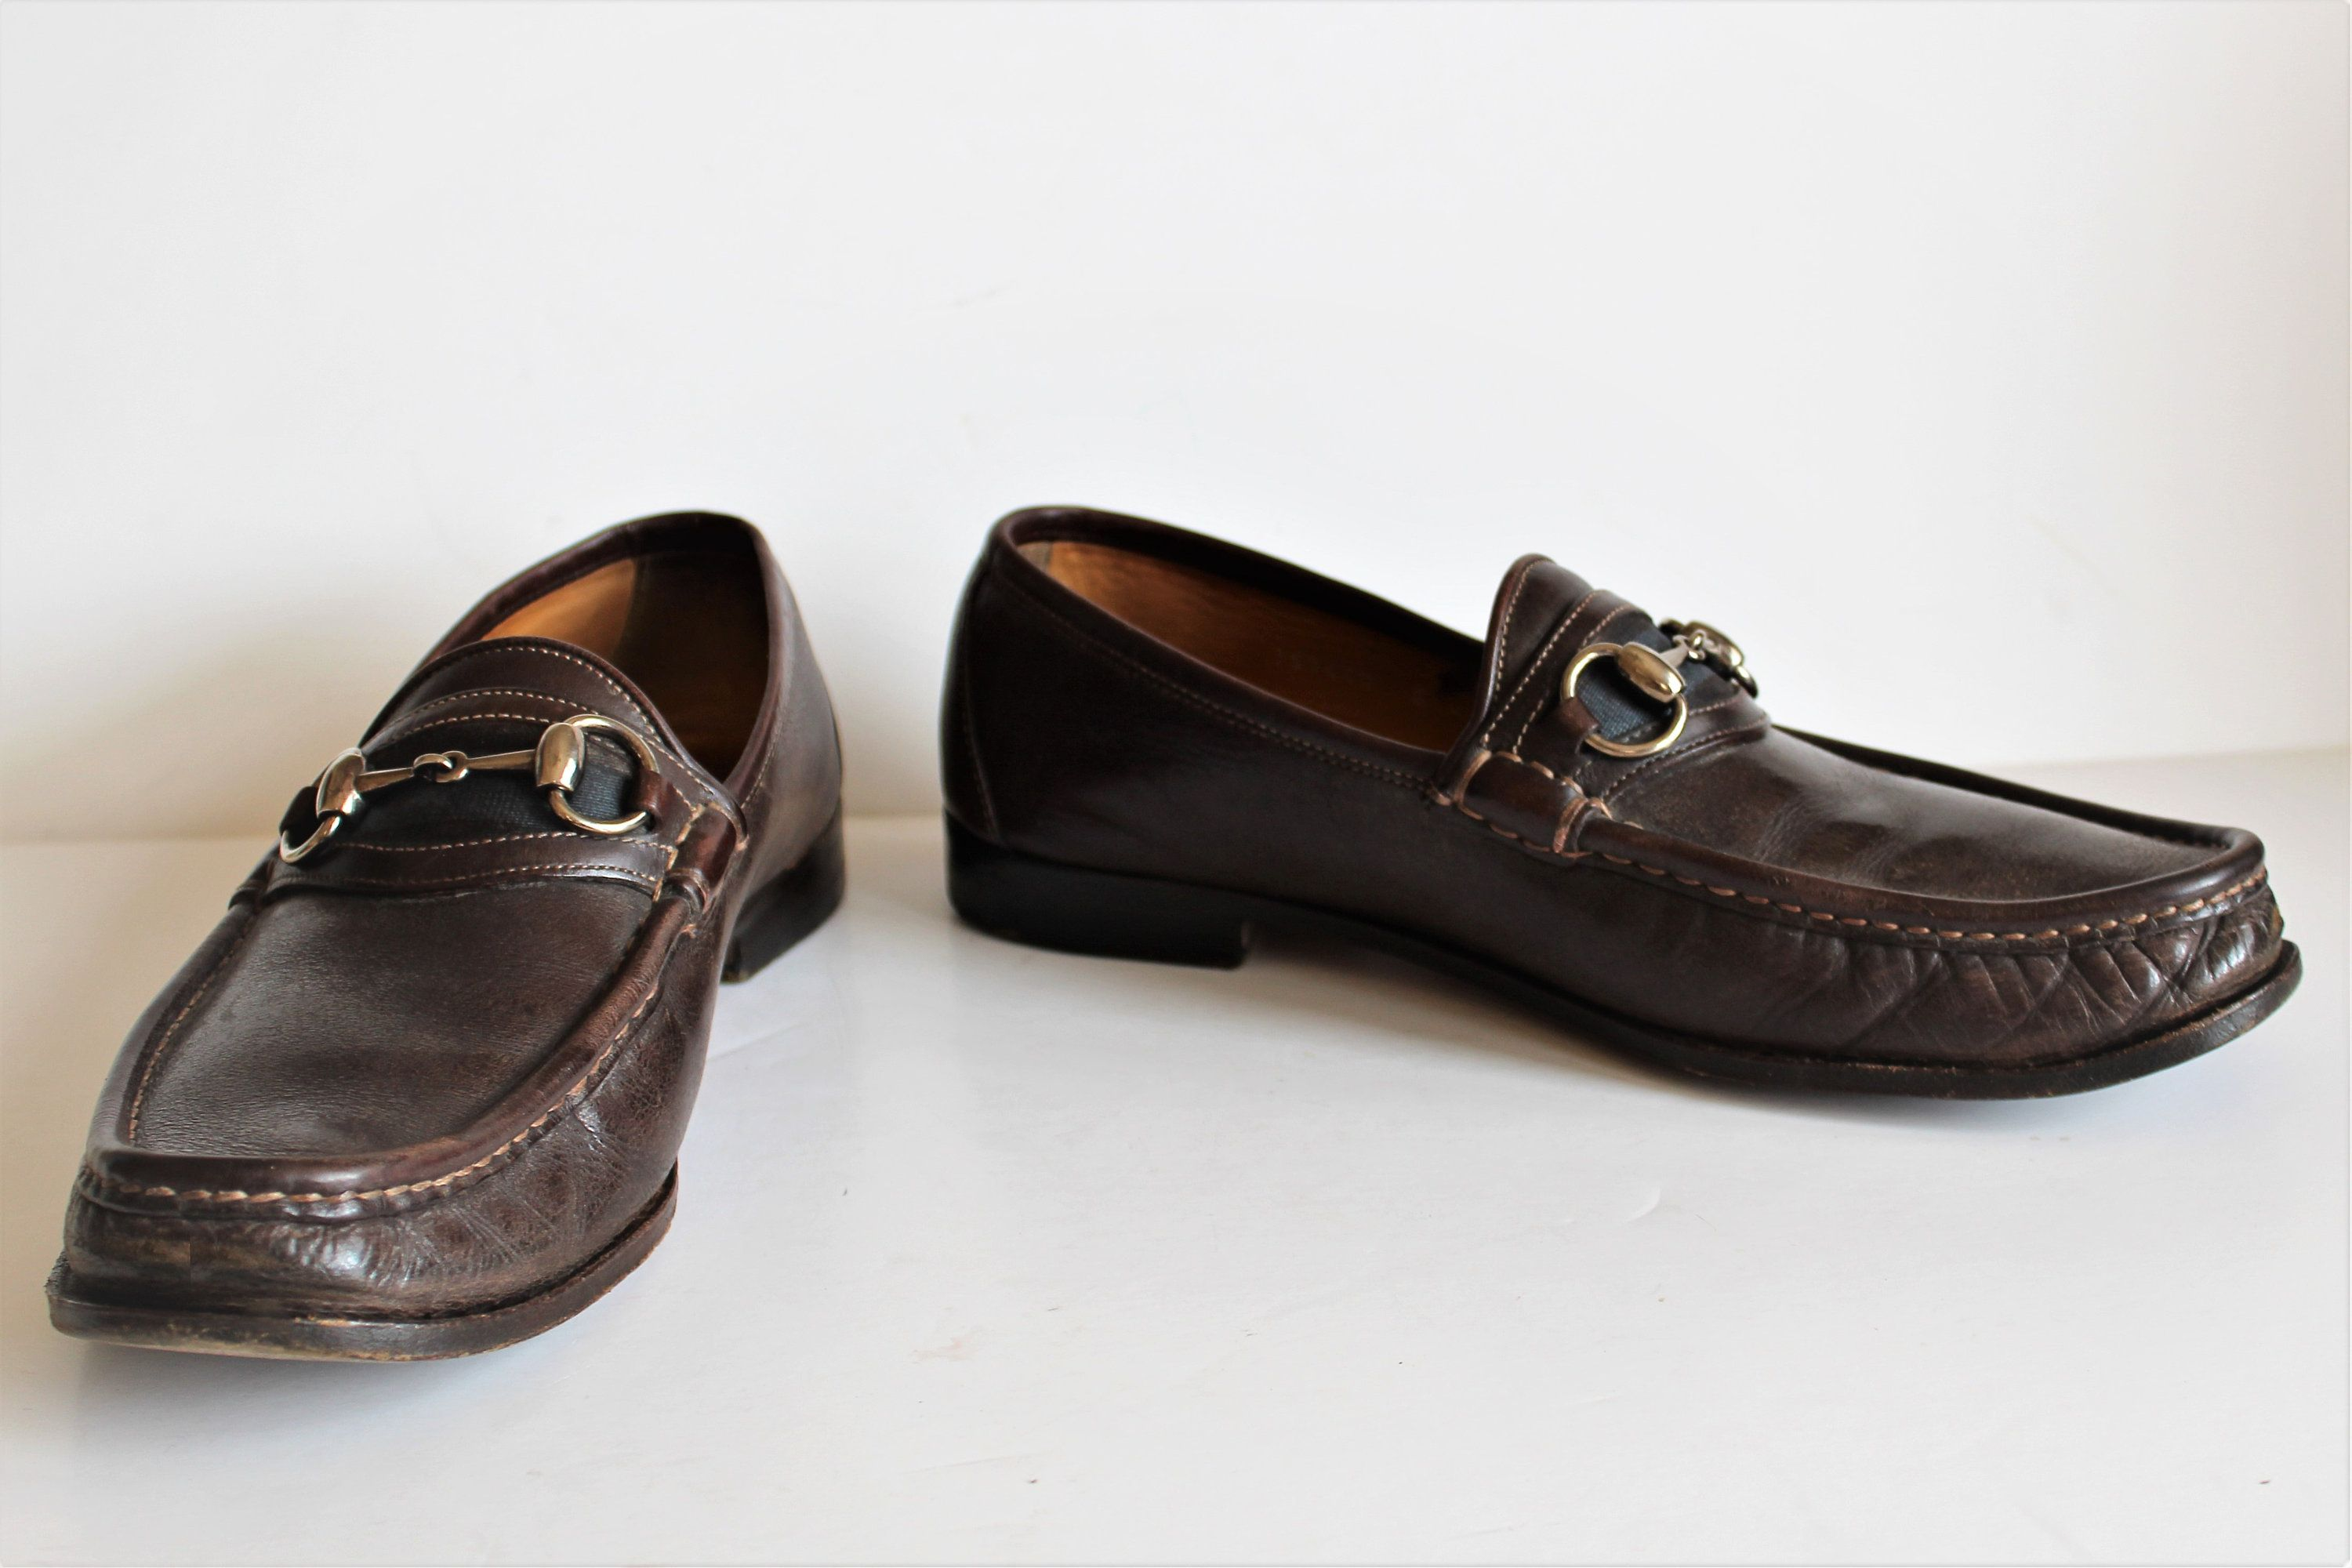 9f3334a01e2 Vintage Gucci loafers for men  Gucci Shoes